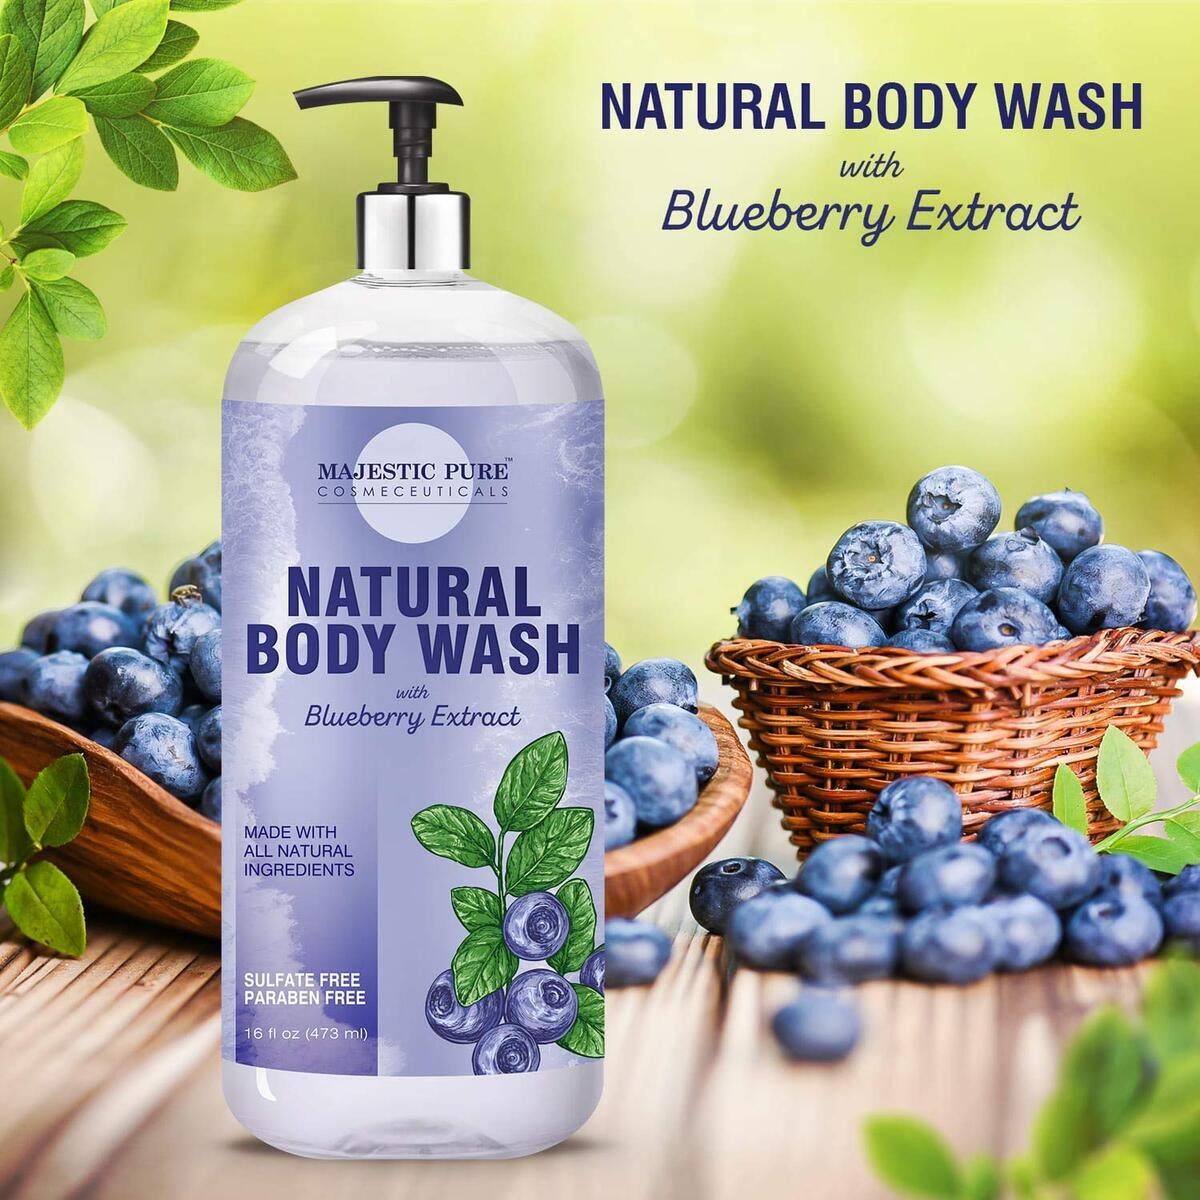 All Natural Body Wash with Blueberry Extract - for Body, Face and Hand - Liquid Soap, Sulfate Free & Paraben Free, for Women and Men - 16 fl oz